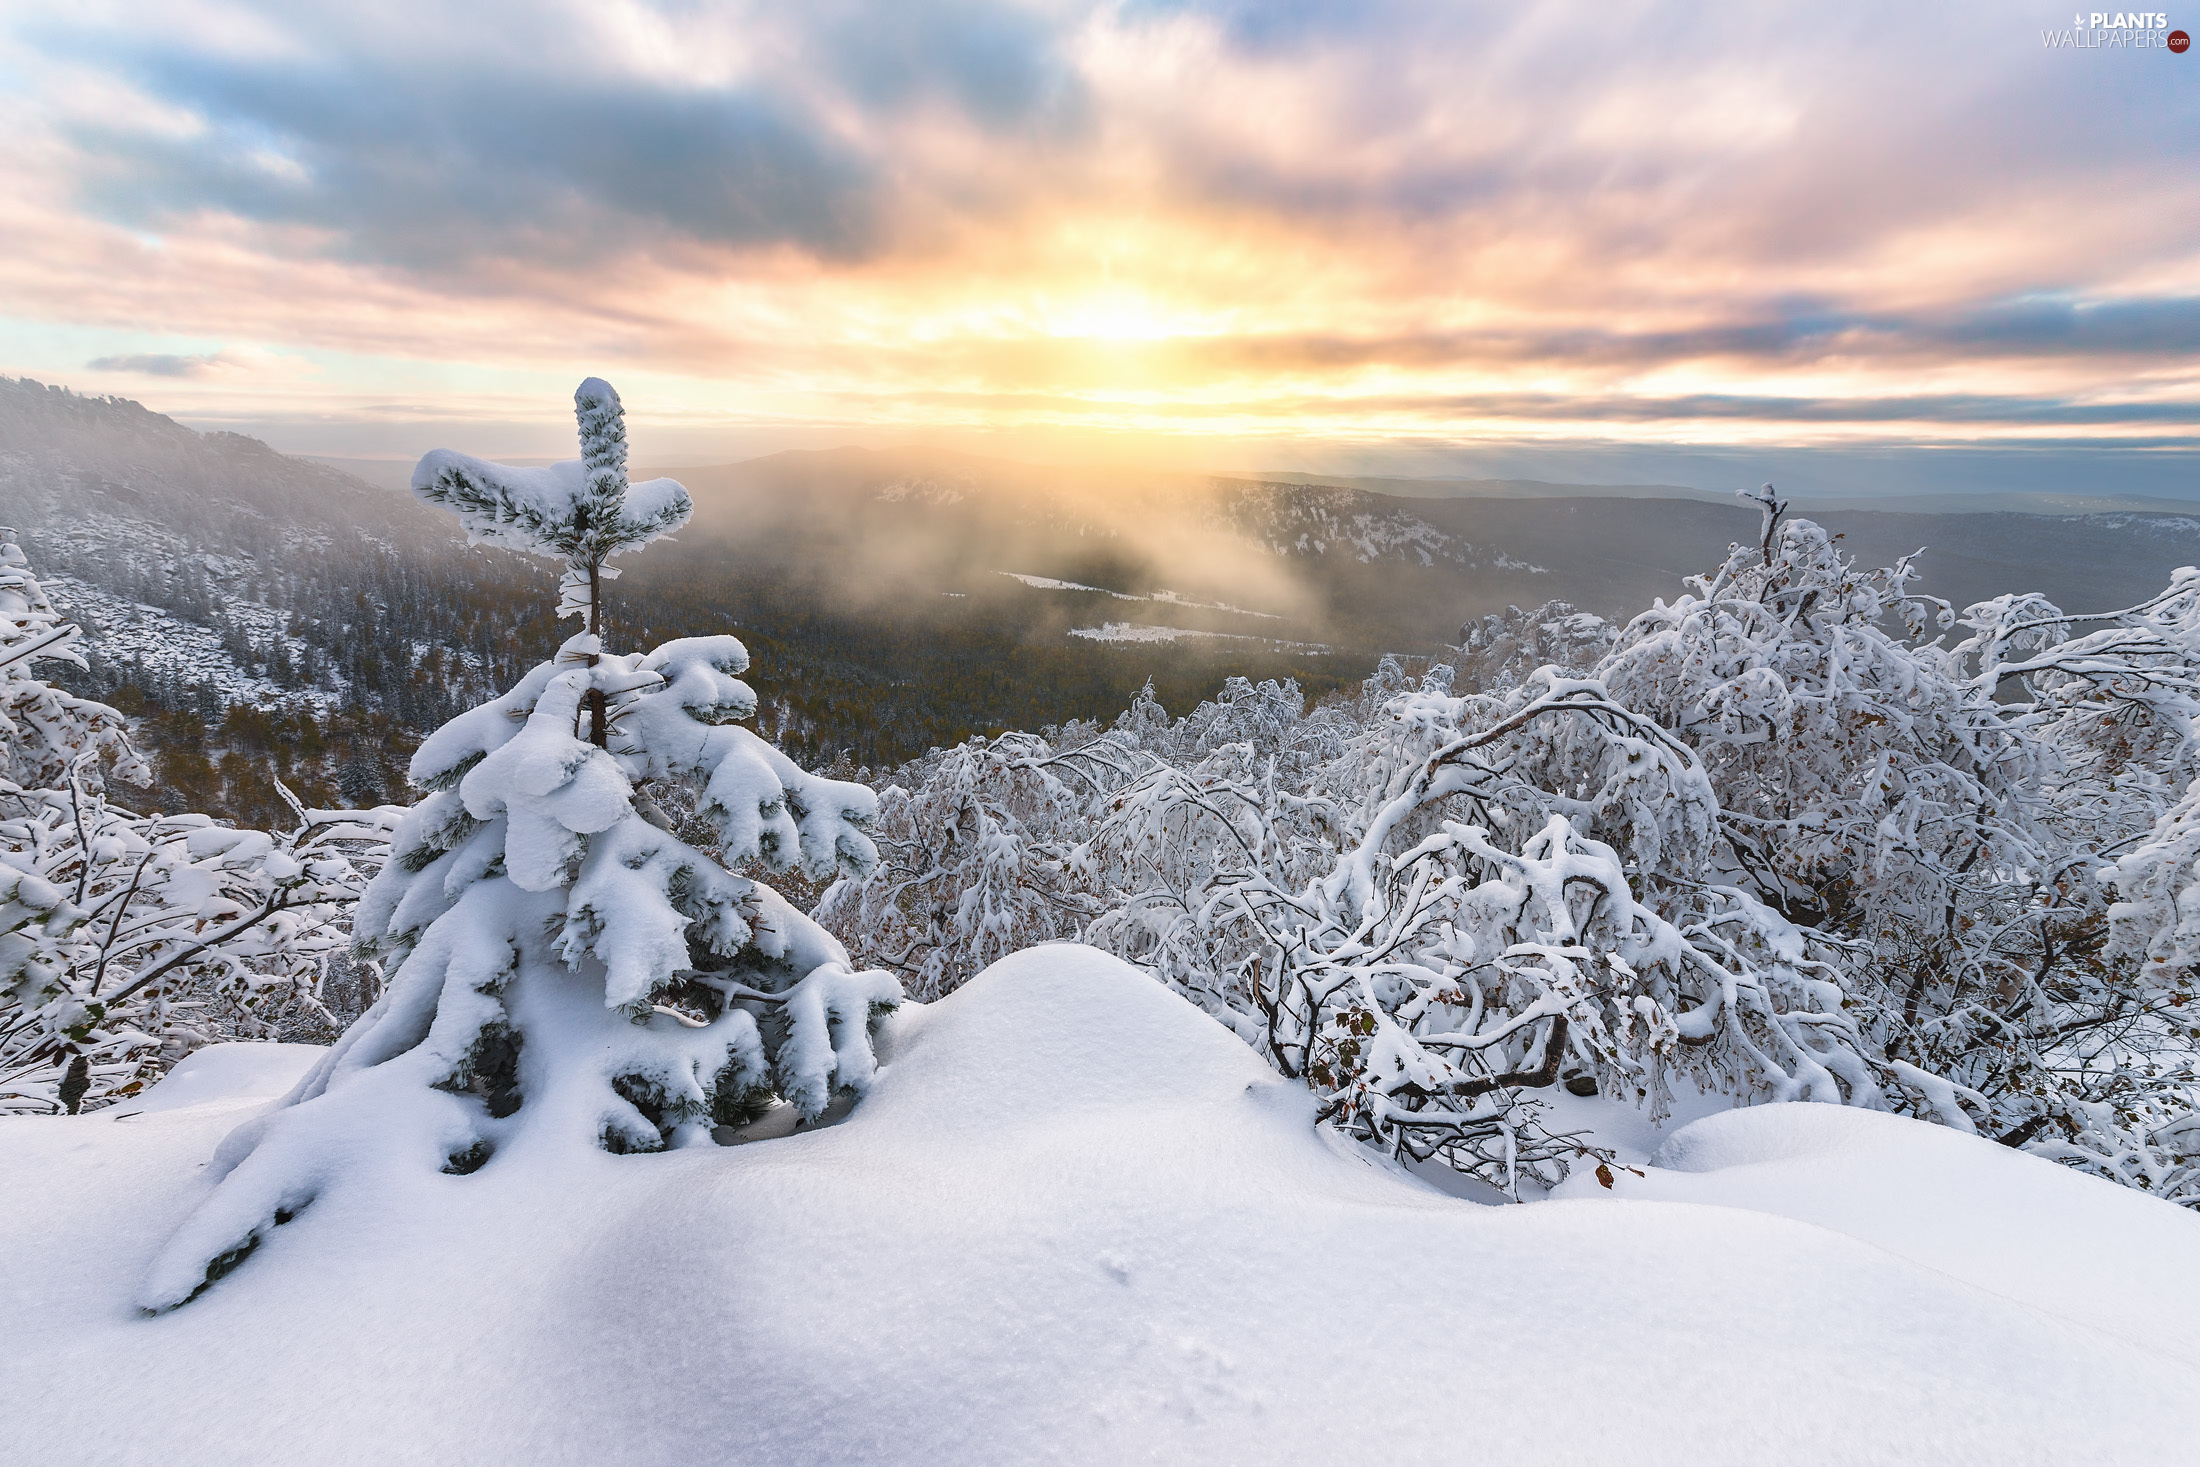 The Hills, winter, Mountains, trees, snow, Sunrise, clouds, Fog, viewes